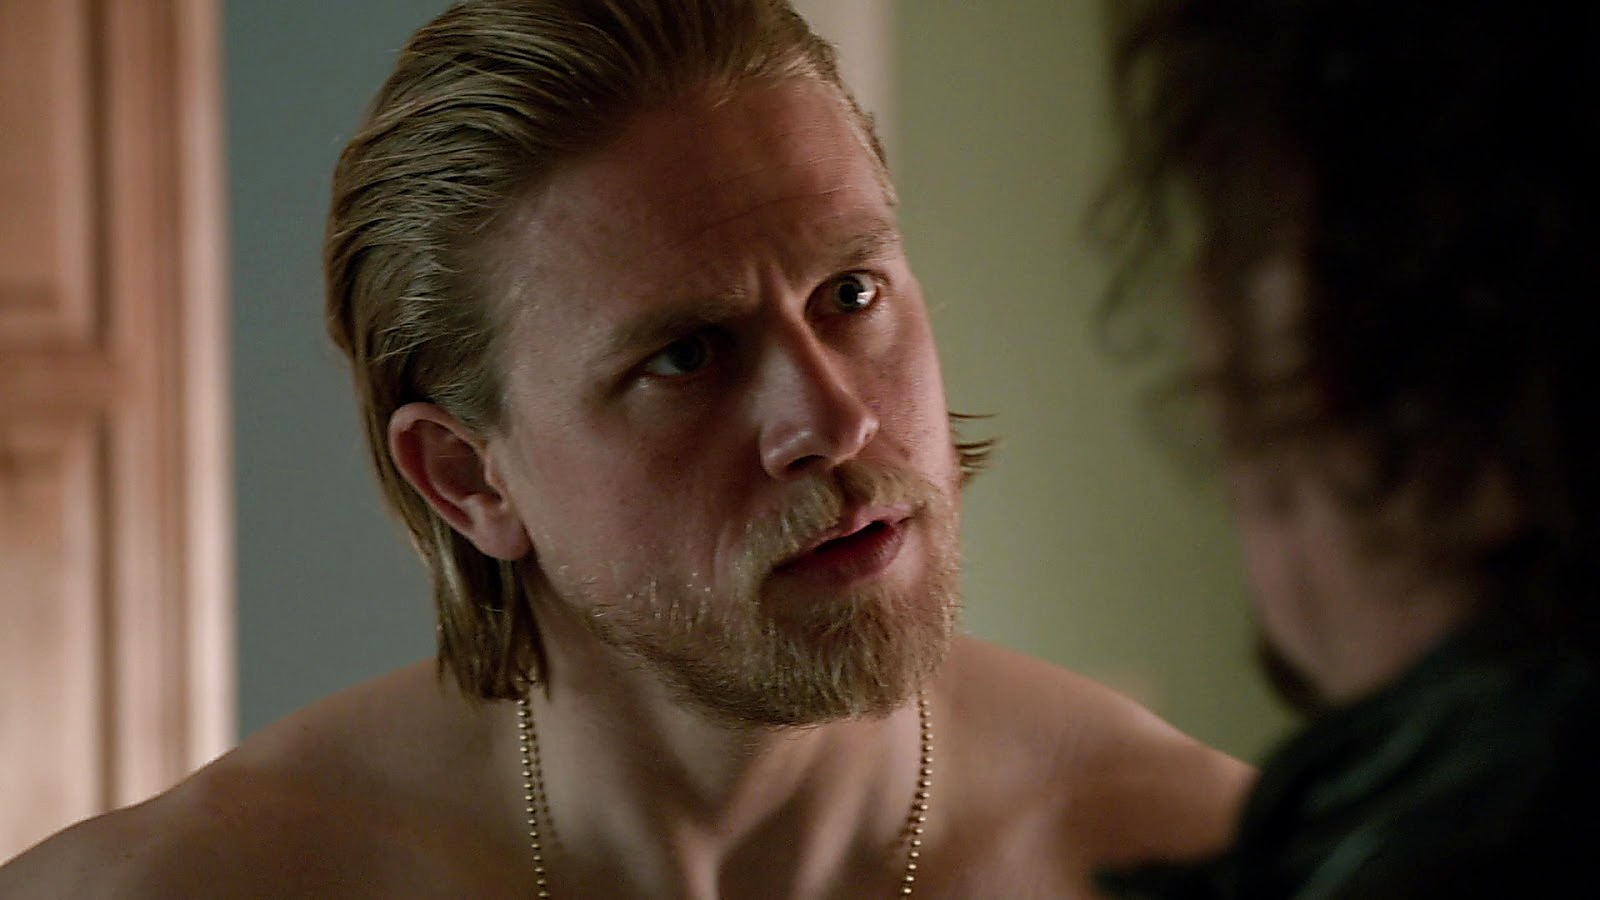 Charlie Hunnam Sons Of Anarchy S06E03 2020 04 04 1586016840 2